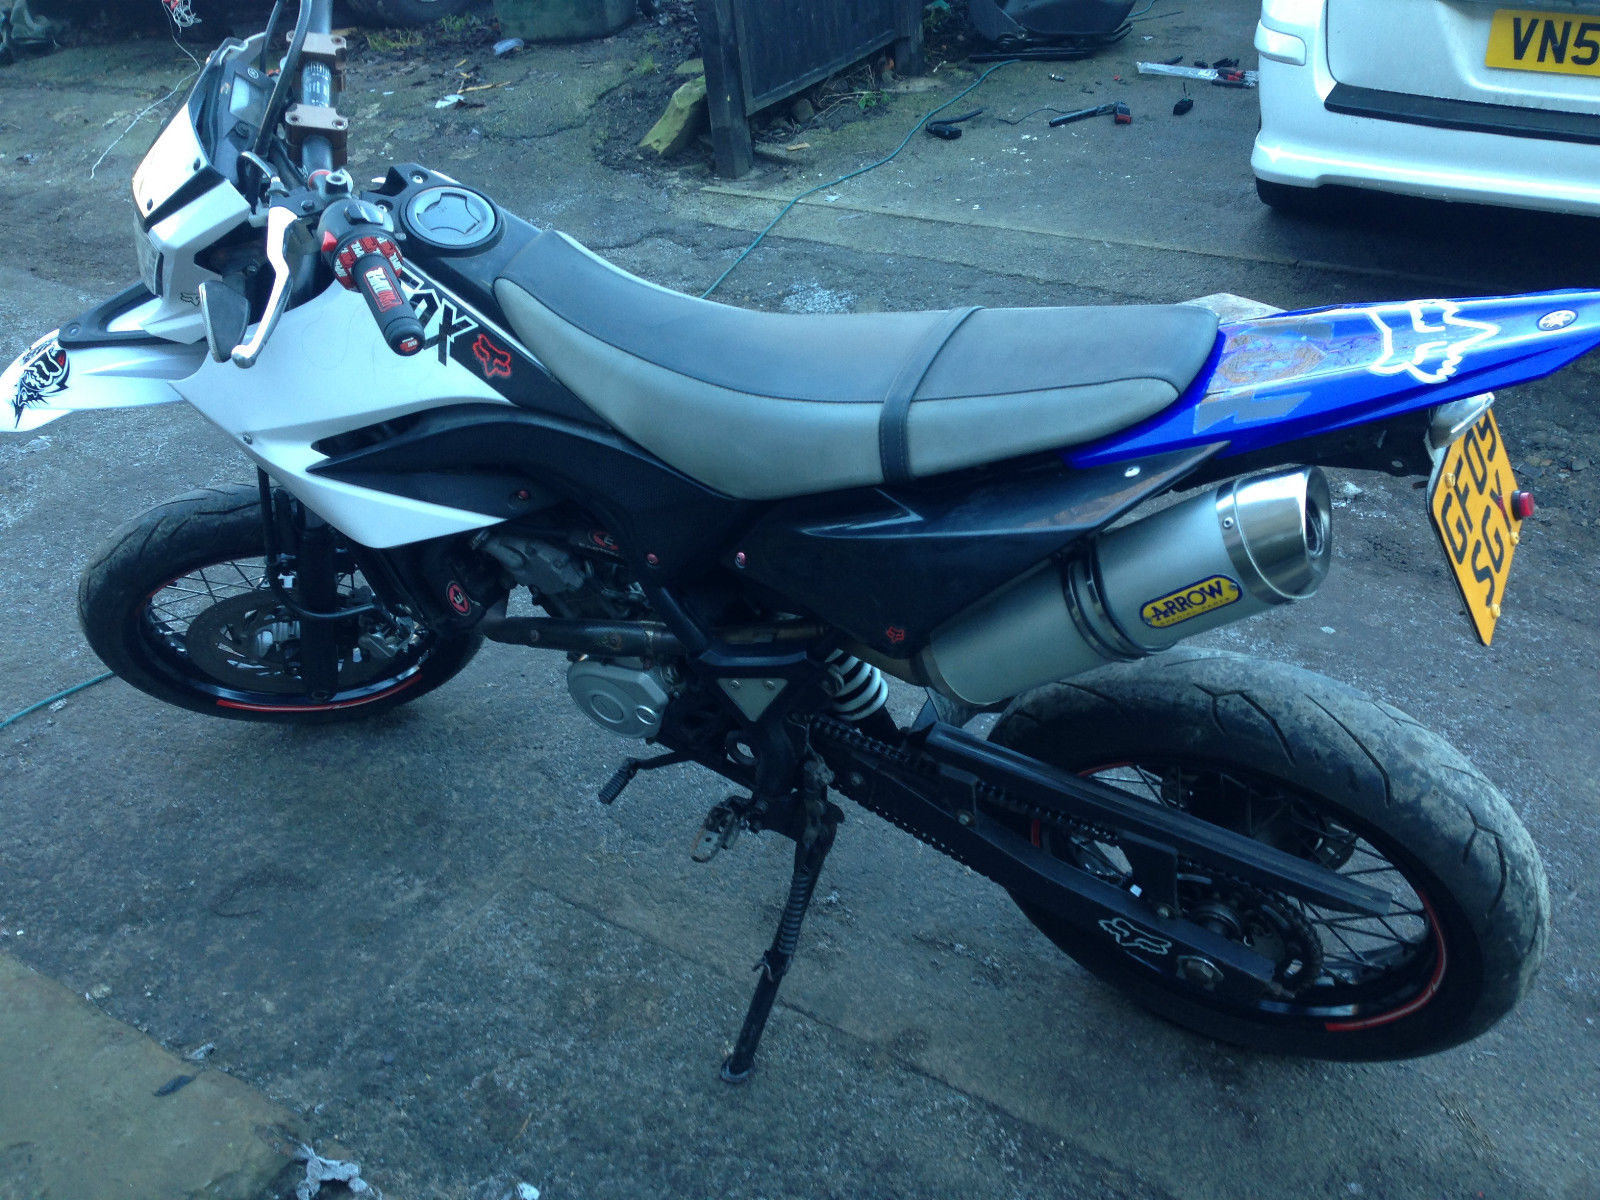 2009 yamaha wr 125 x supermoto white 12 months mot. Black Bedroom Furniture Sets. Home Design Ideas